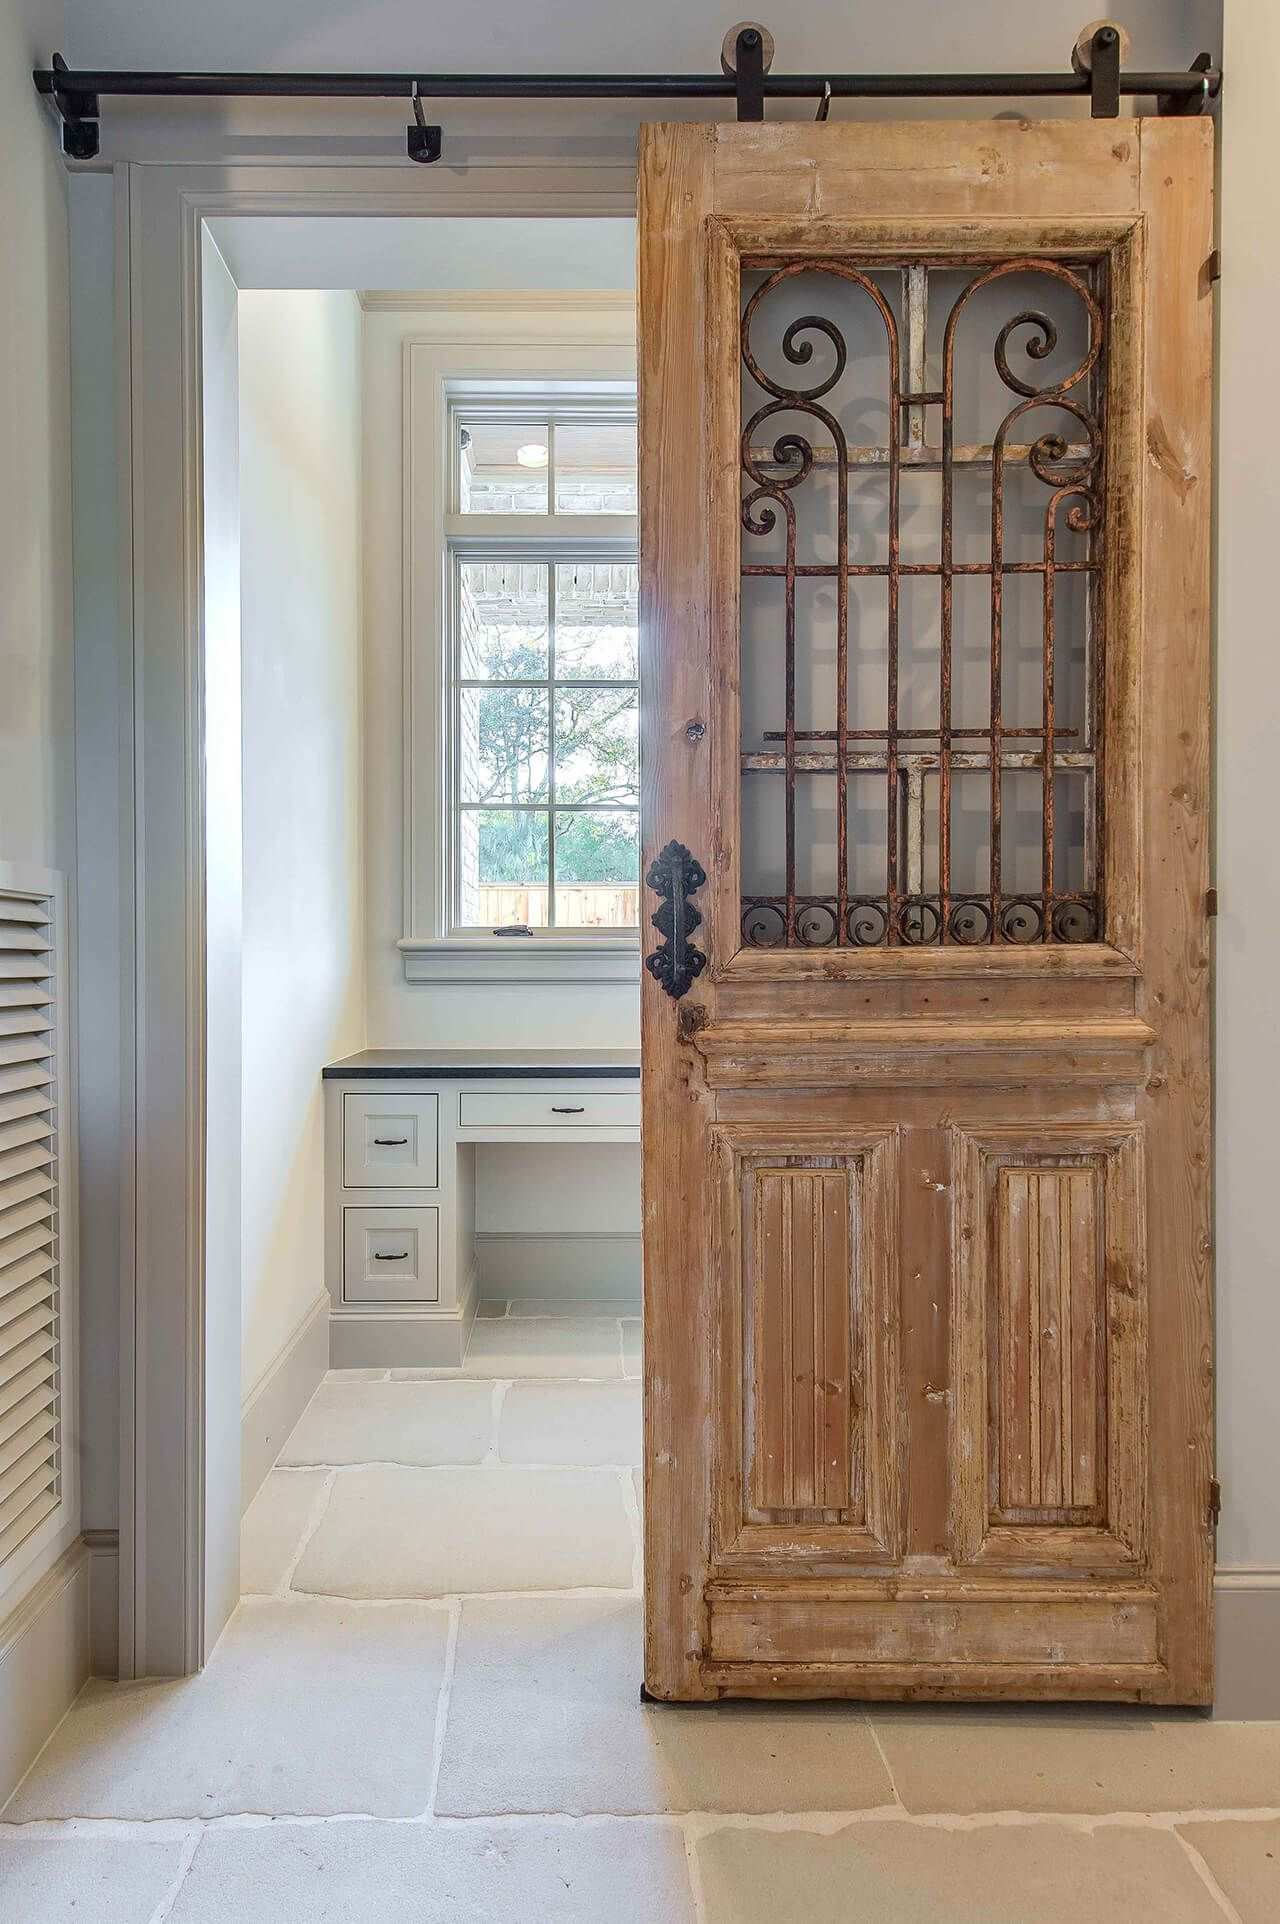 33 Artistic and Practical Repurposed Old Door Ideas | Wrought iron ...